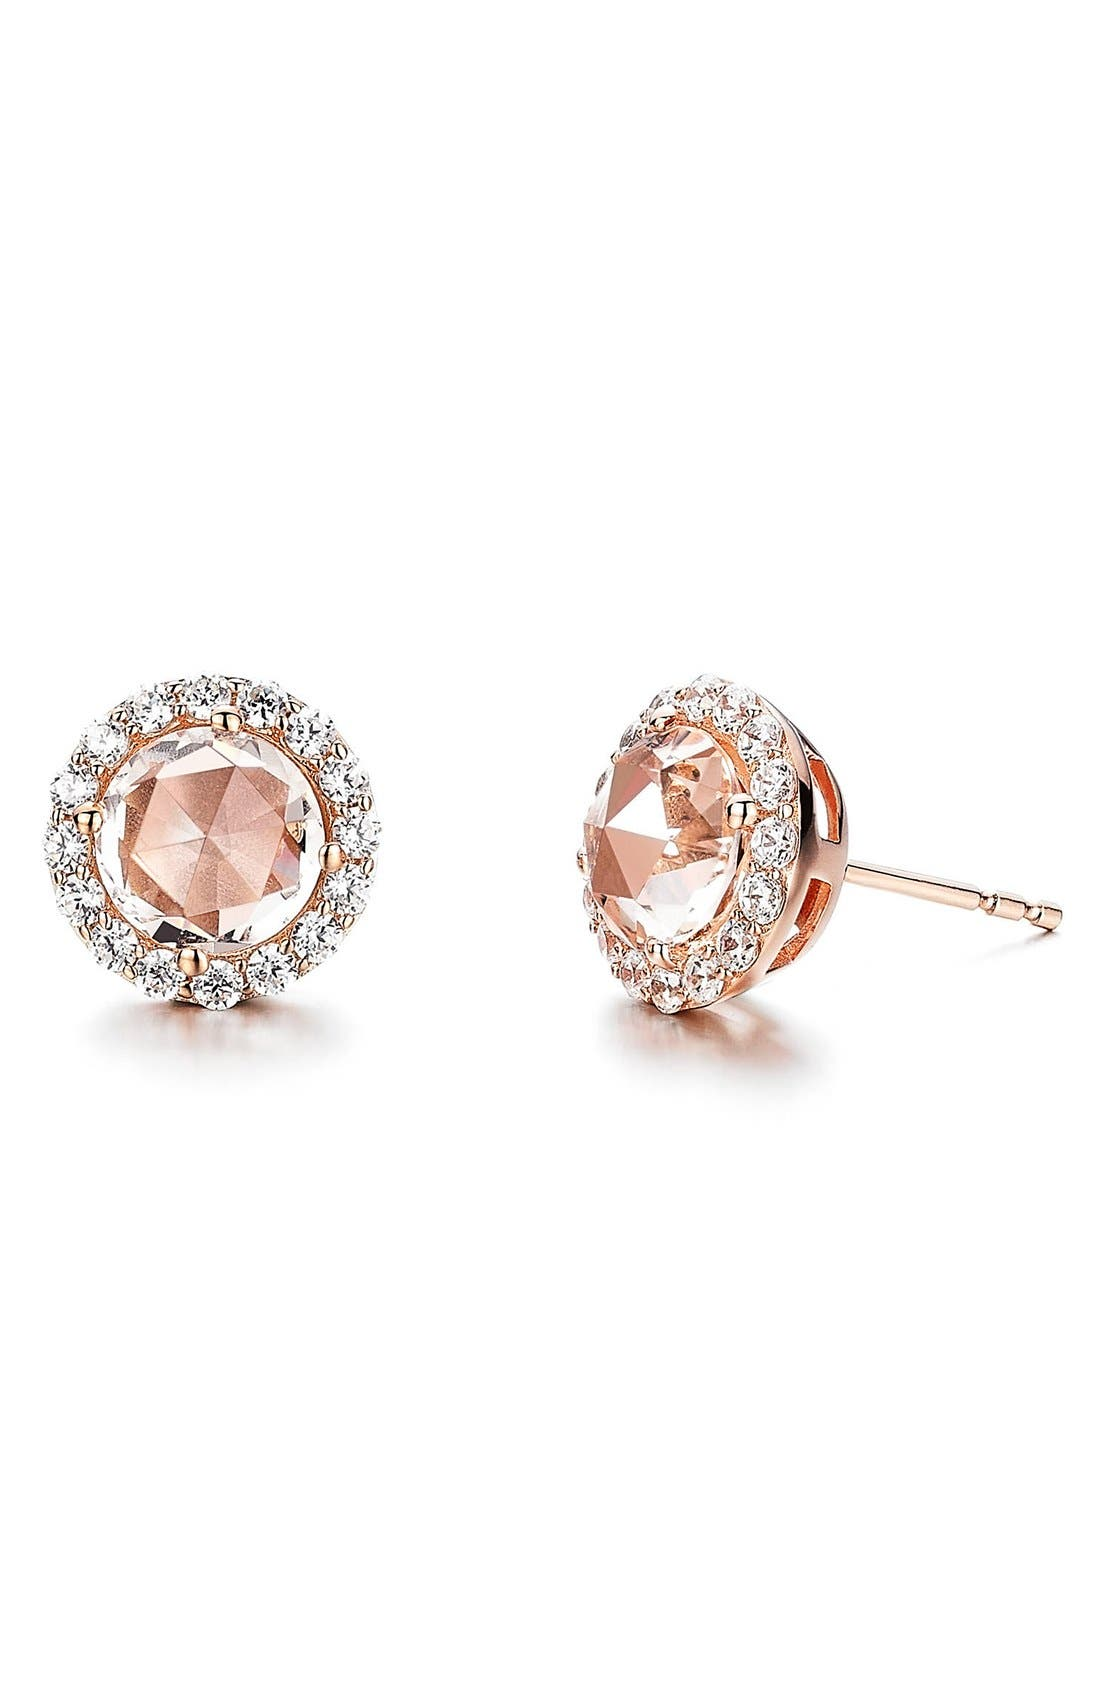 Stud Earrings,                             Main thumbnail 1, color,                             PINK / ROSE GOLD